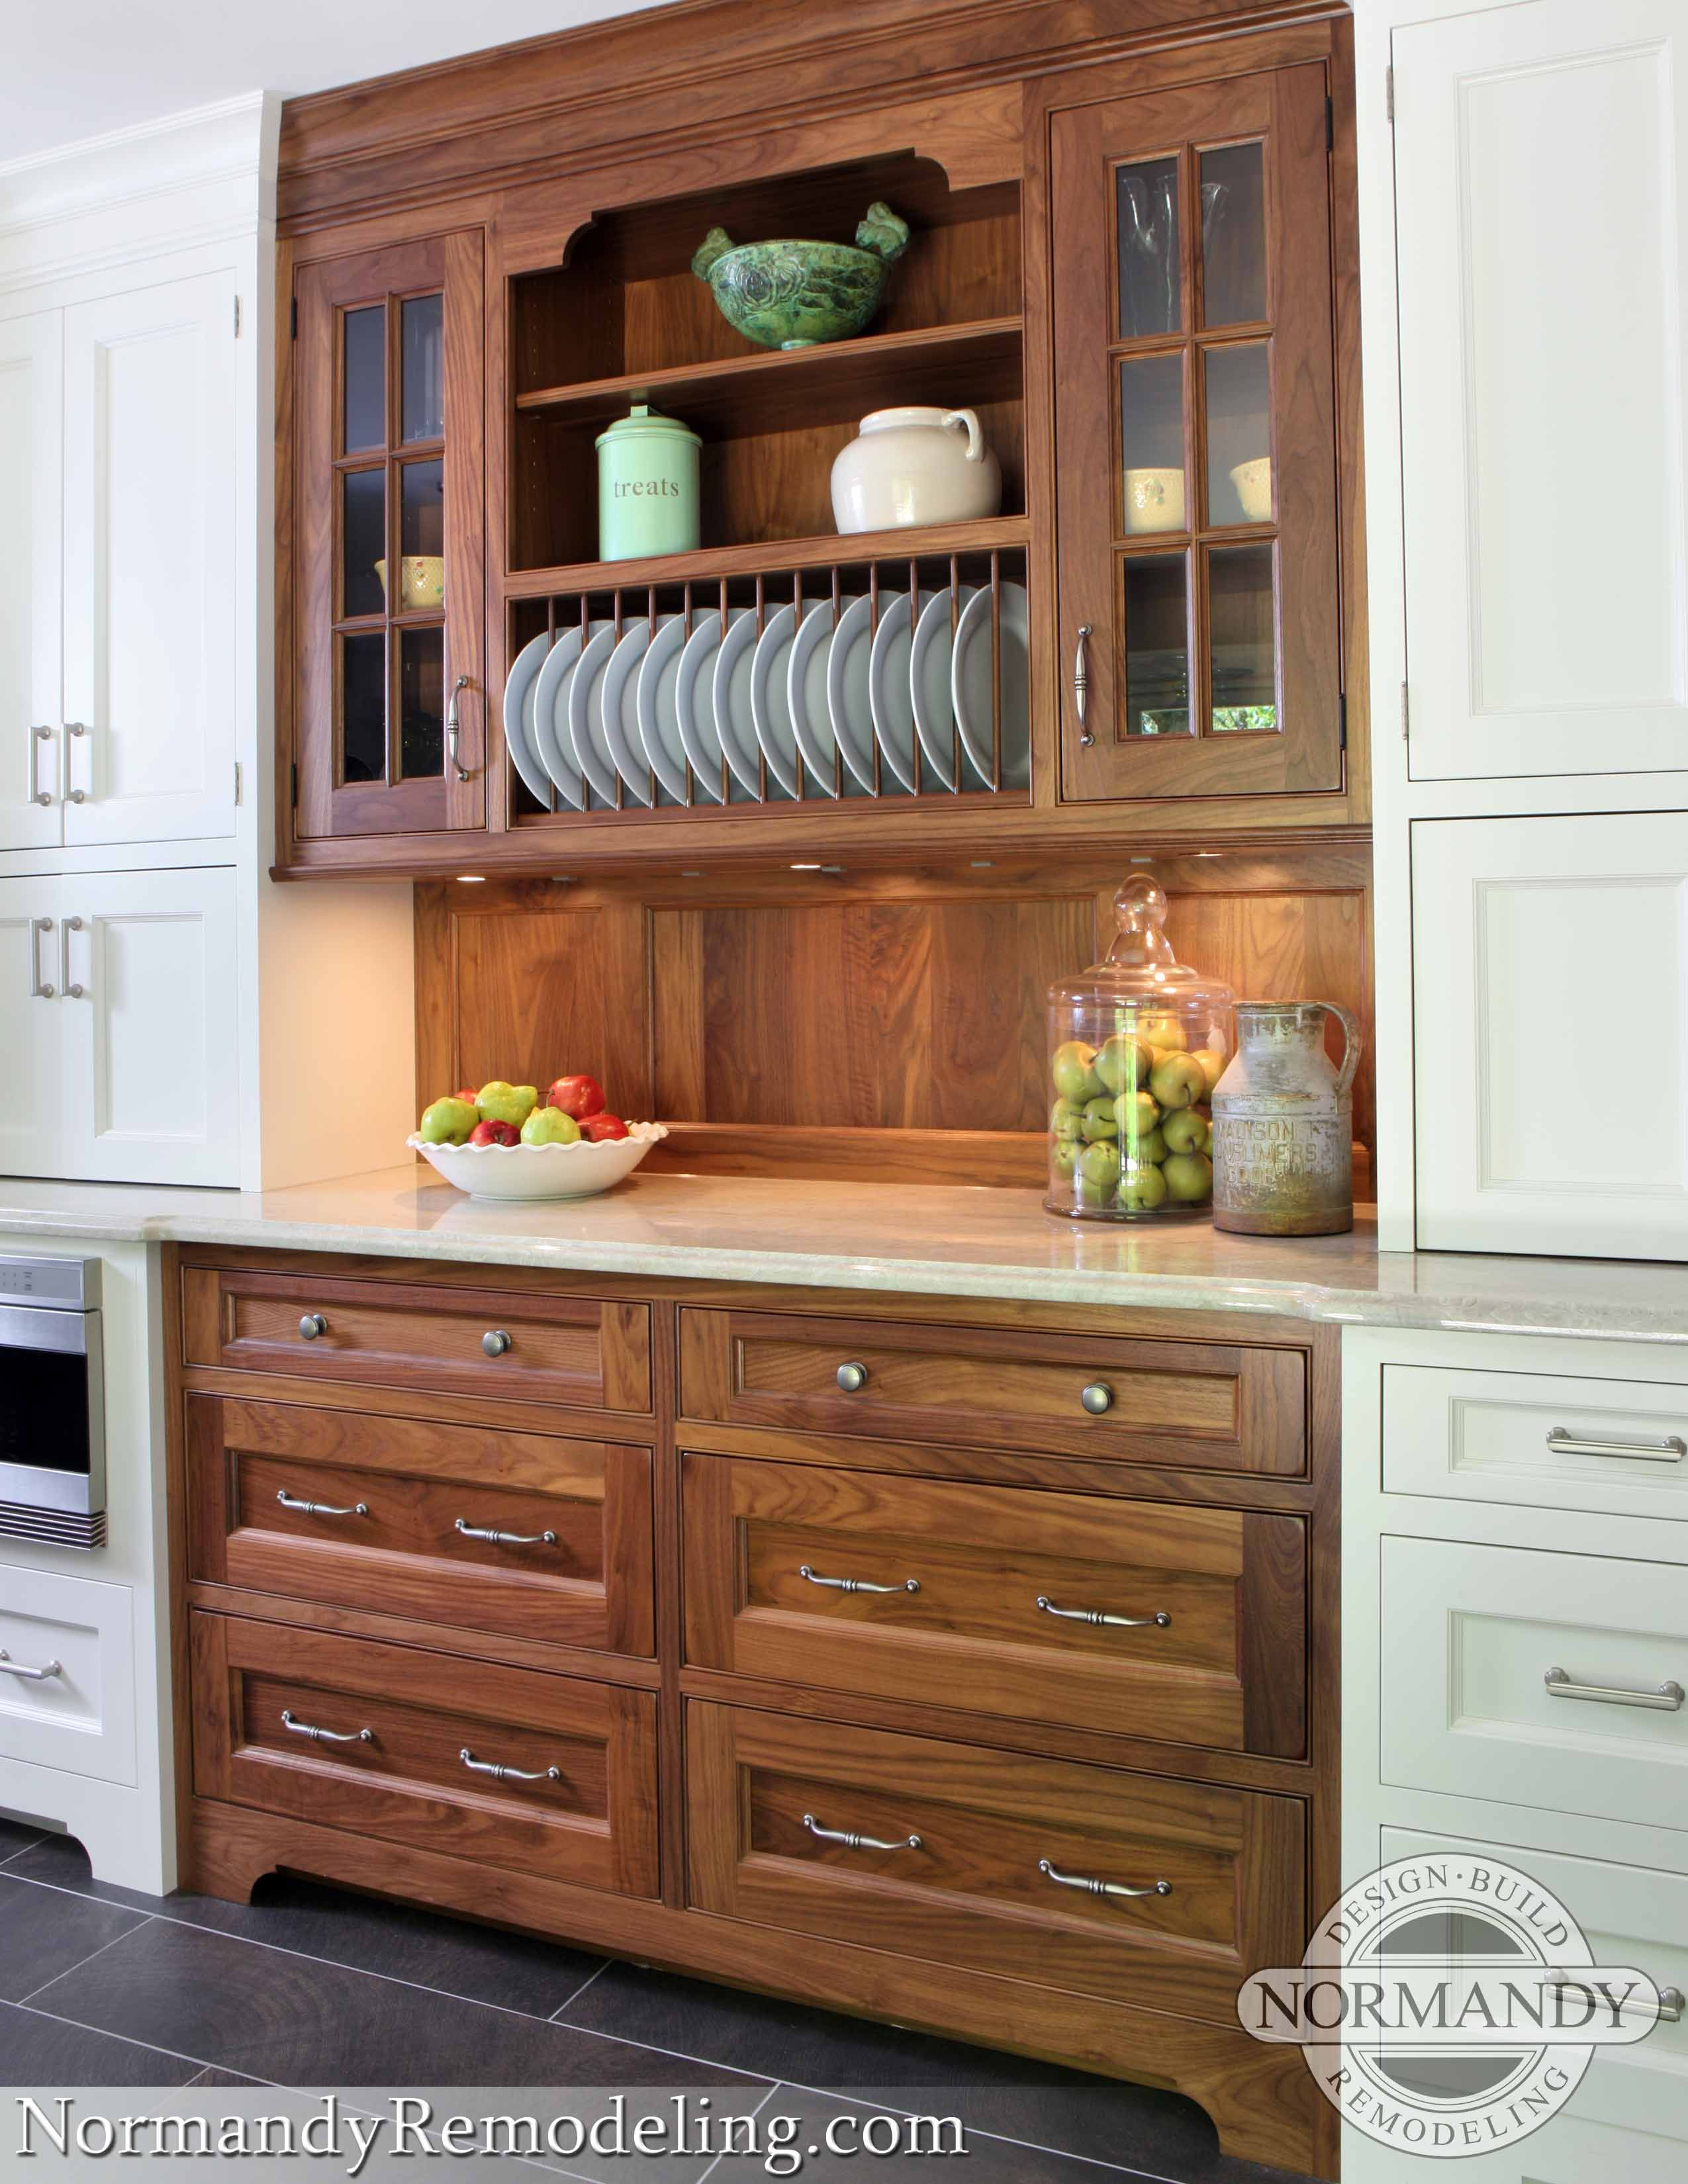 A Gourmet Kitchen Fit For Two Kitchen Cabinet Remodel Small